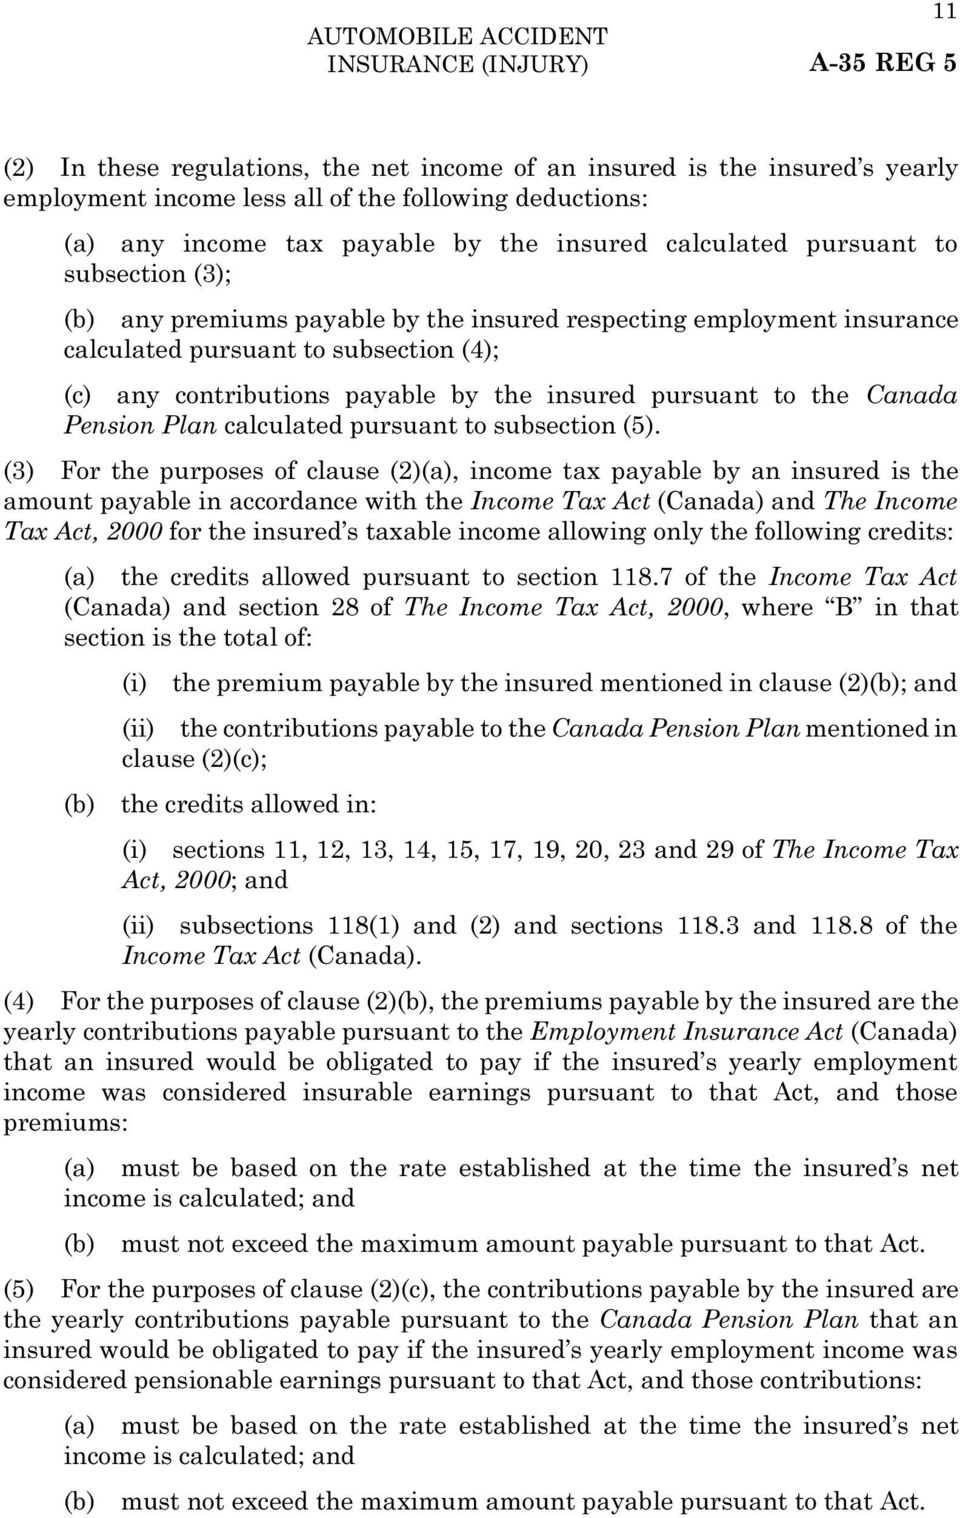 insured pursuant to the Canada Pension Plan calculated pursuant to subsection (5).